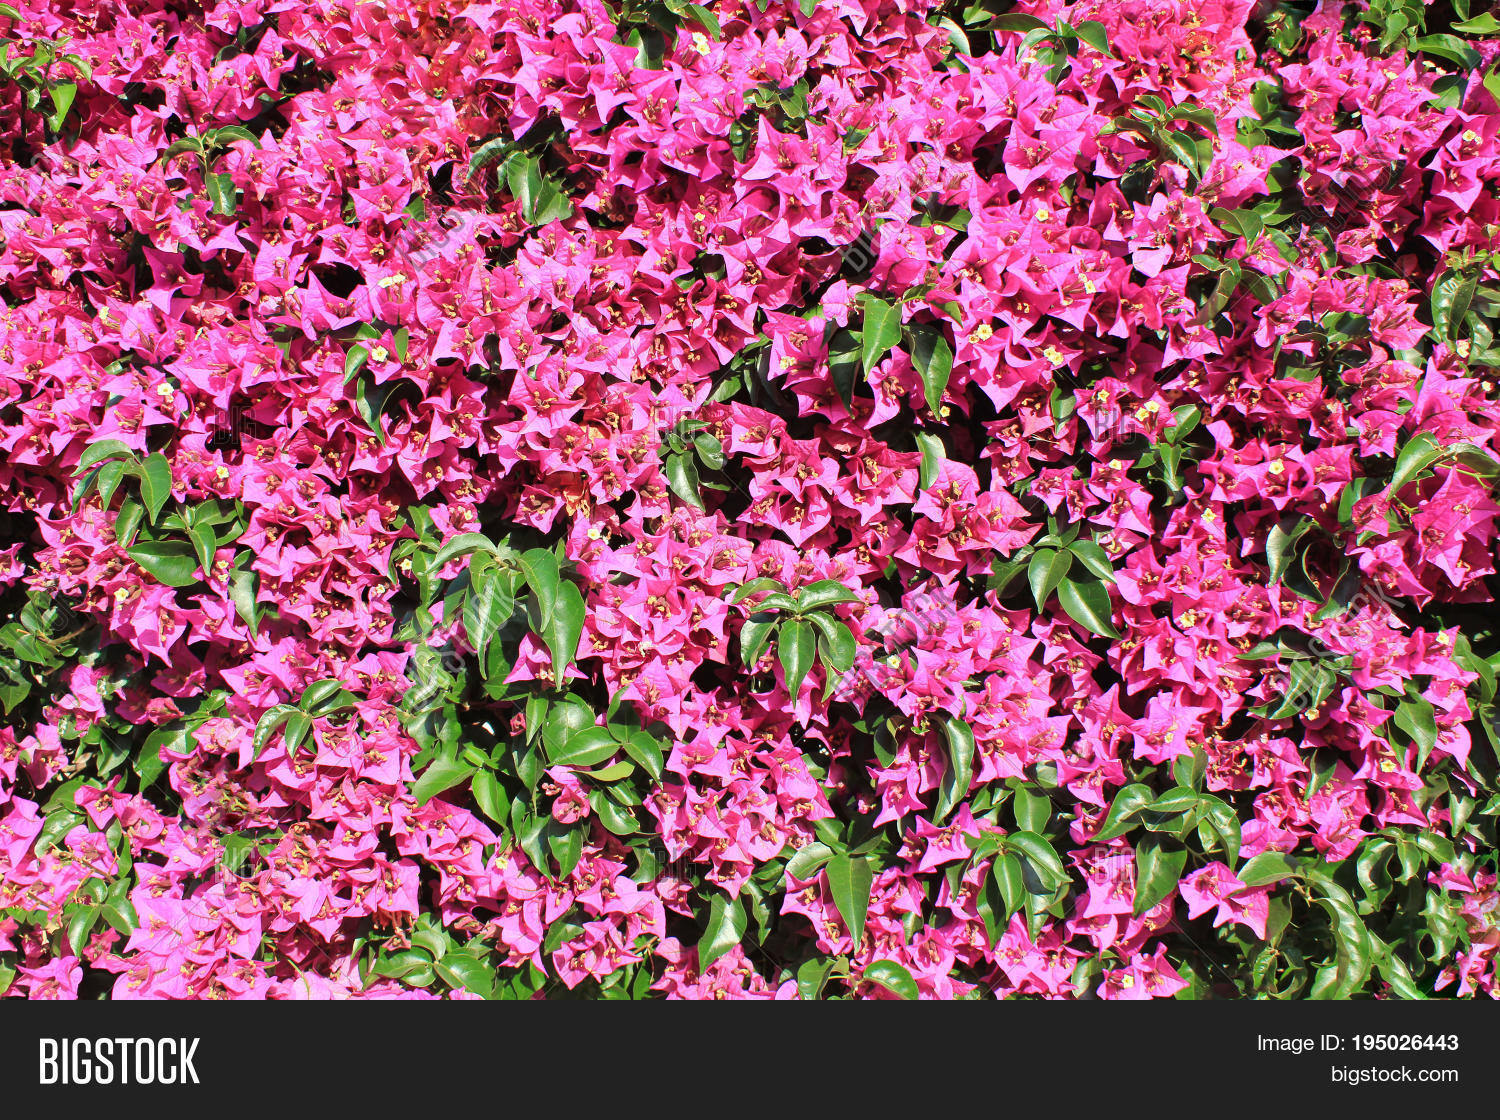 Bright Pink Light Image Photo Free Trial Bigstock